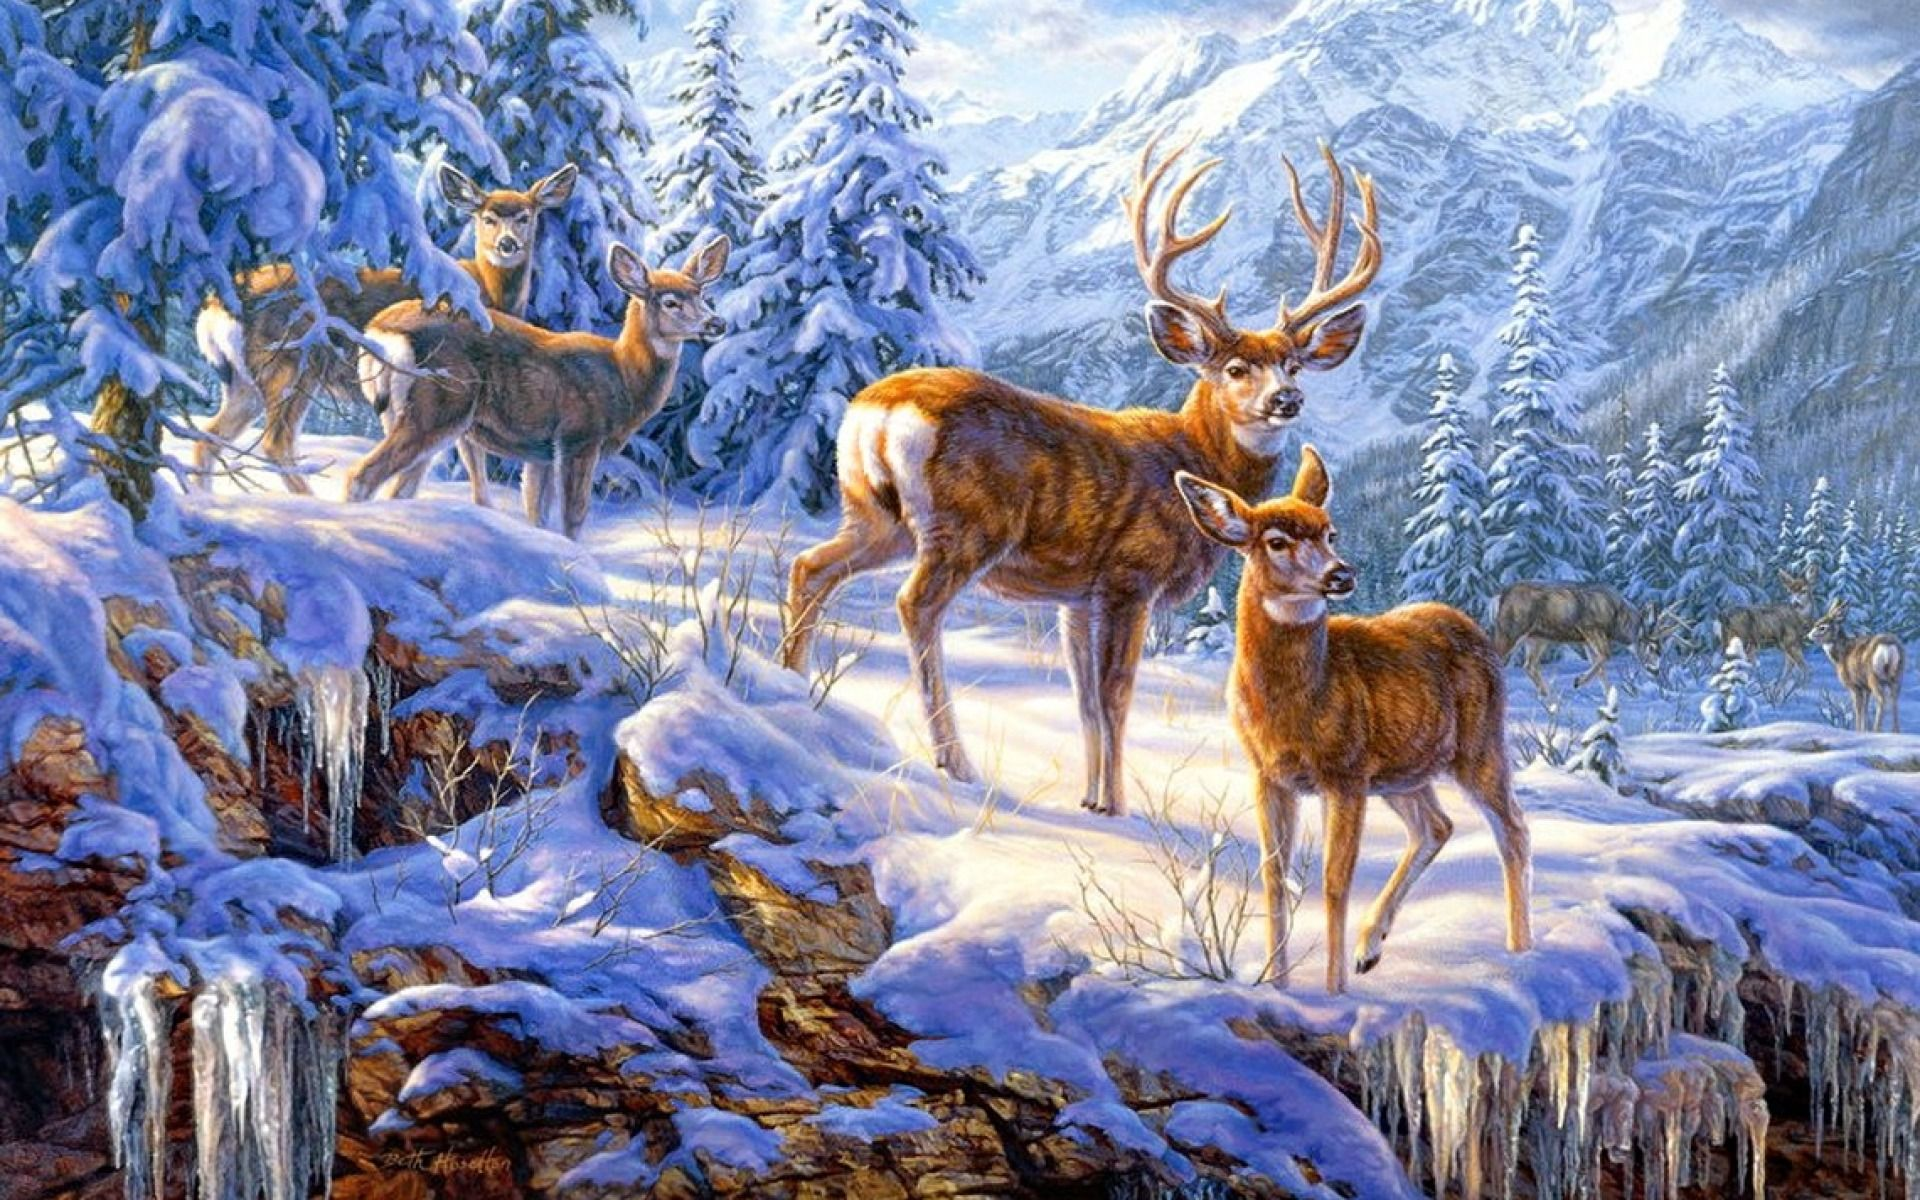 Deer Wallpapers Android Apps on Google Play × Pictures Of